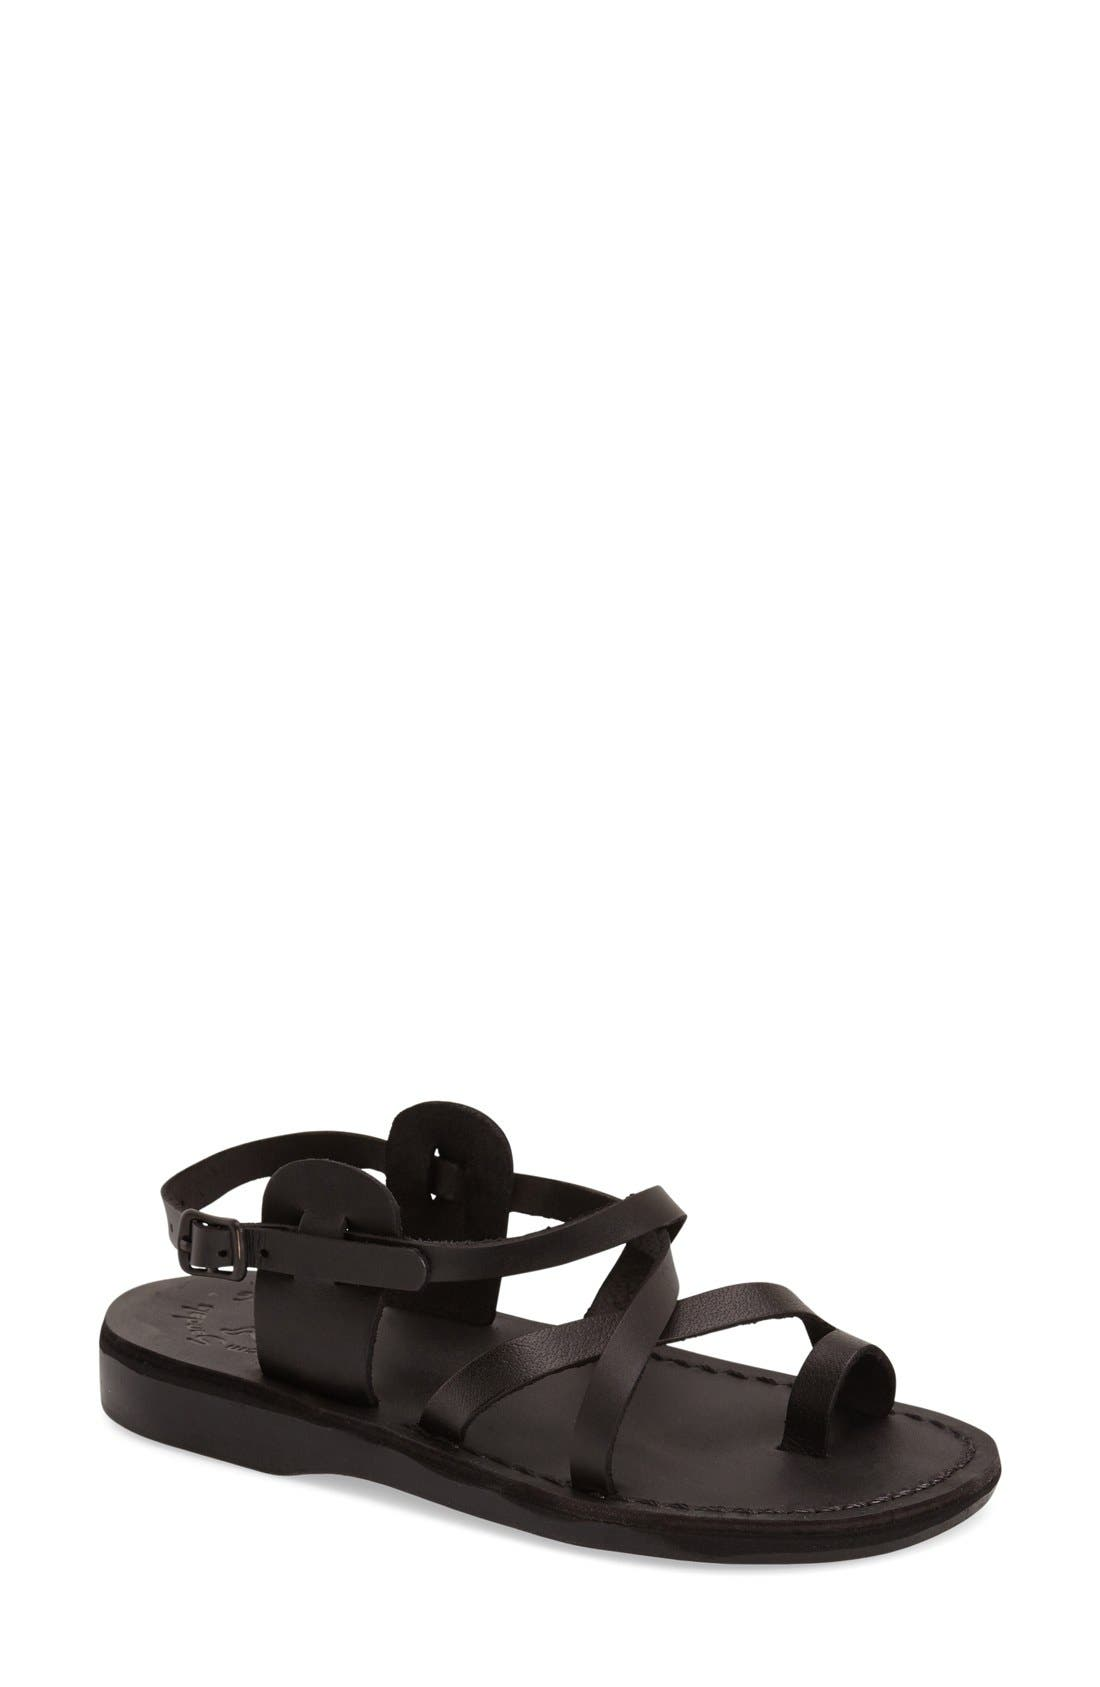 'The Good Shepard' Strappy Sandal,                             Main thumbnail 1, color,                             Black Leather